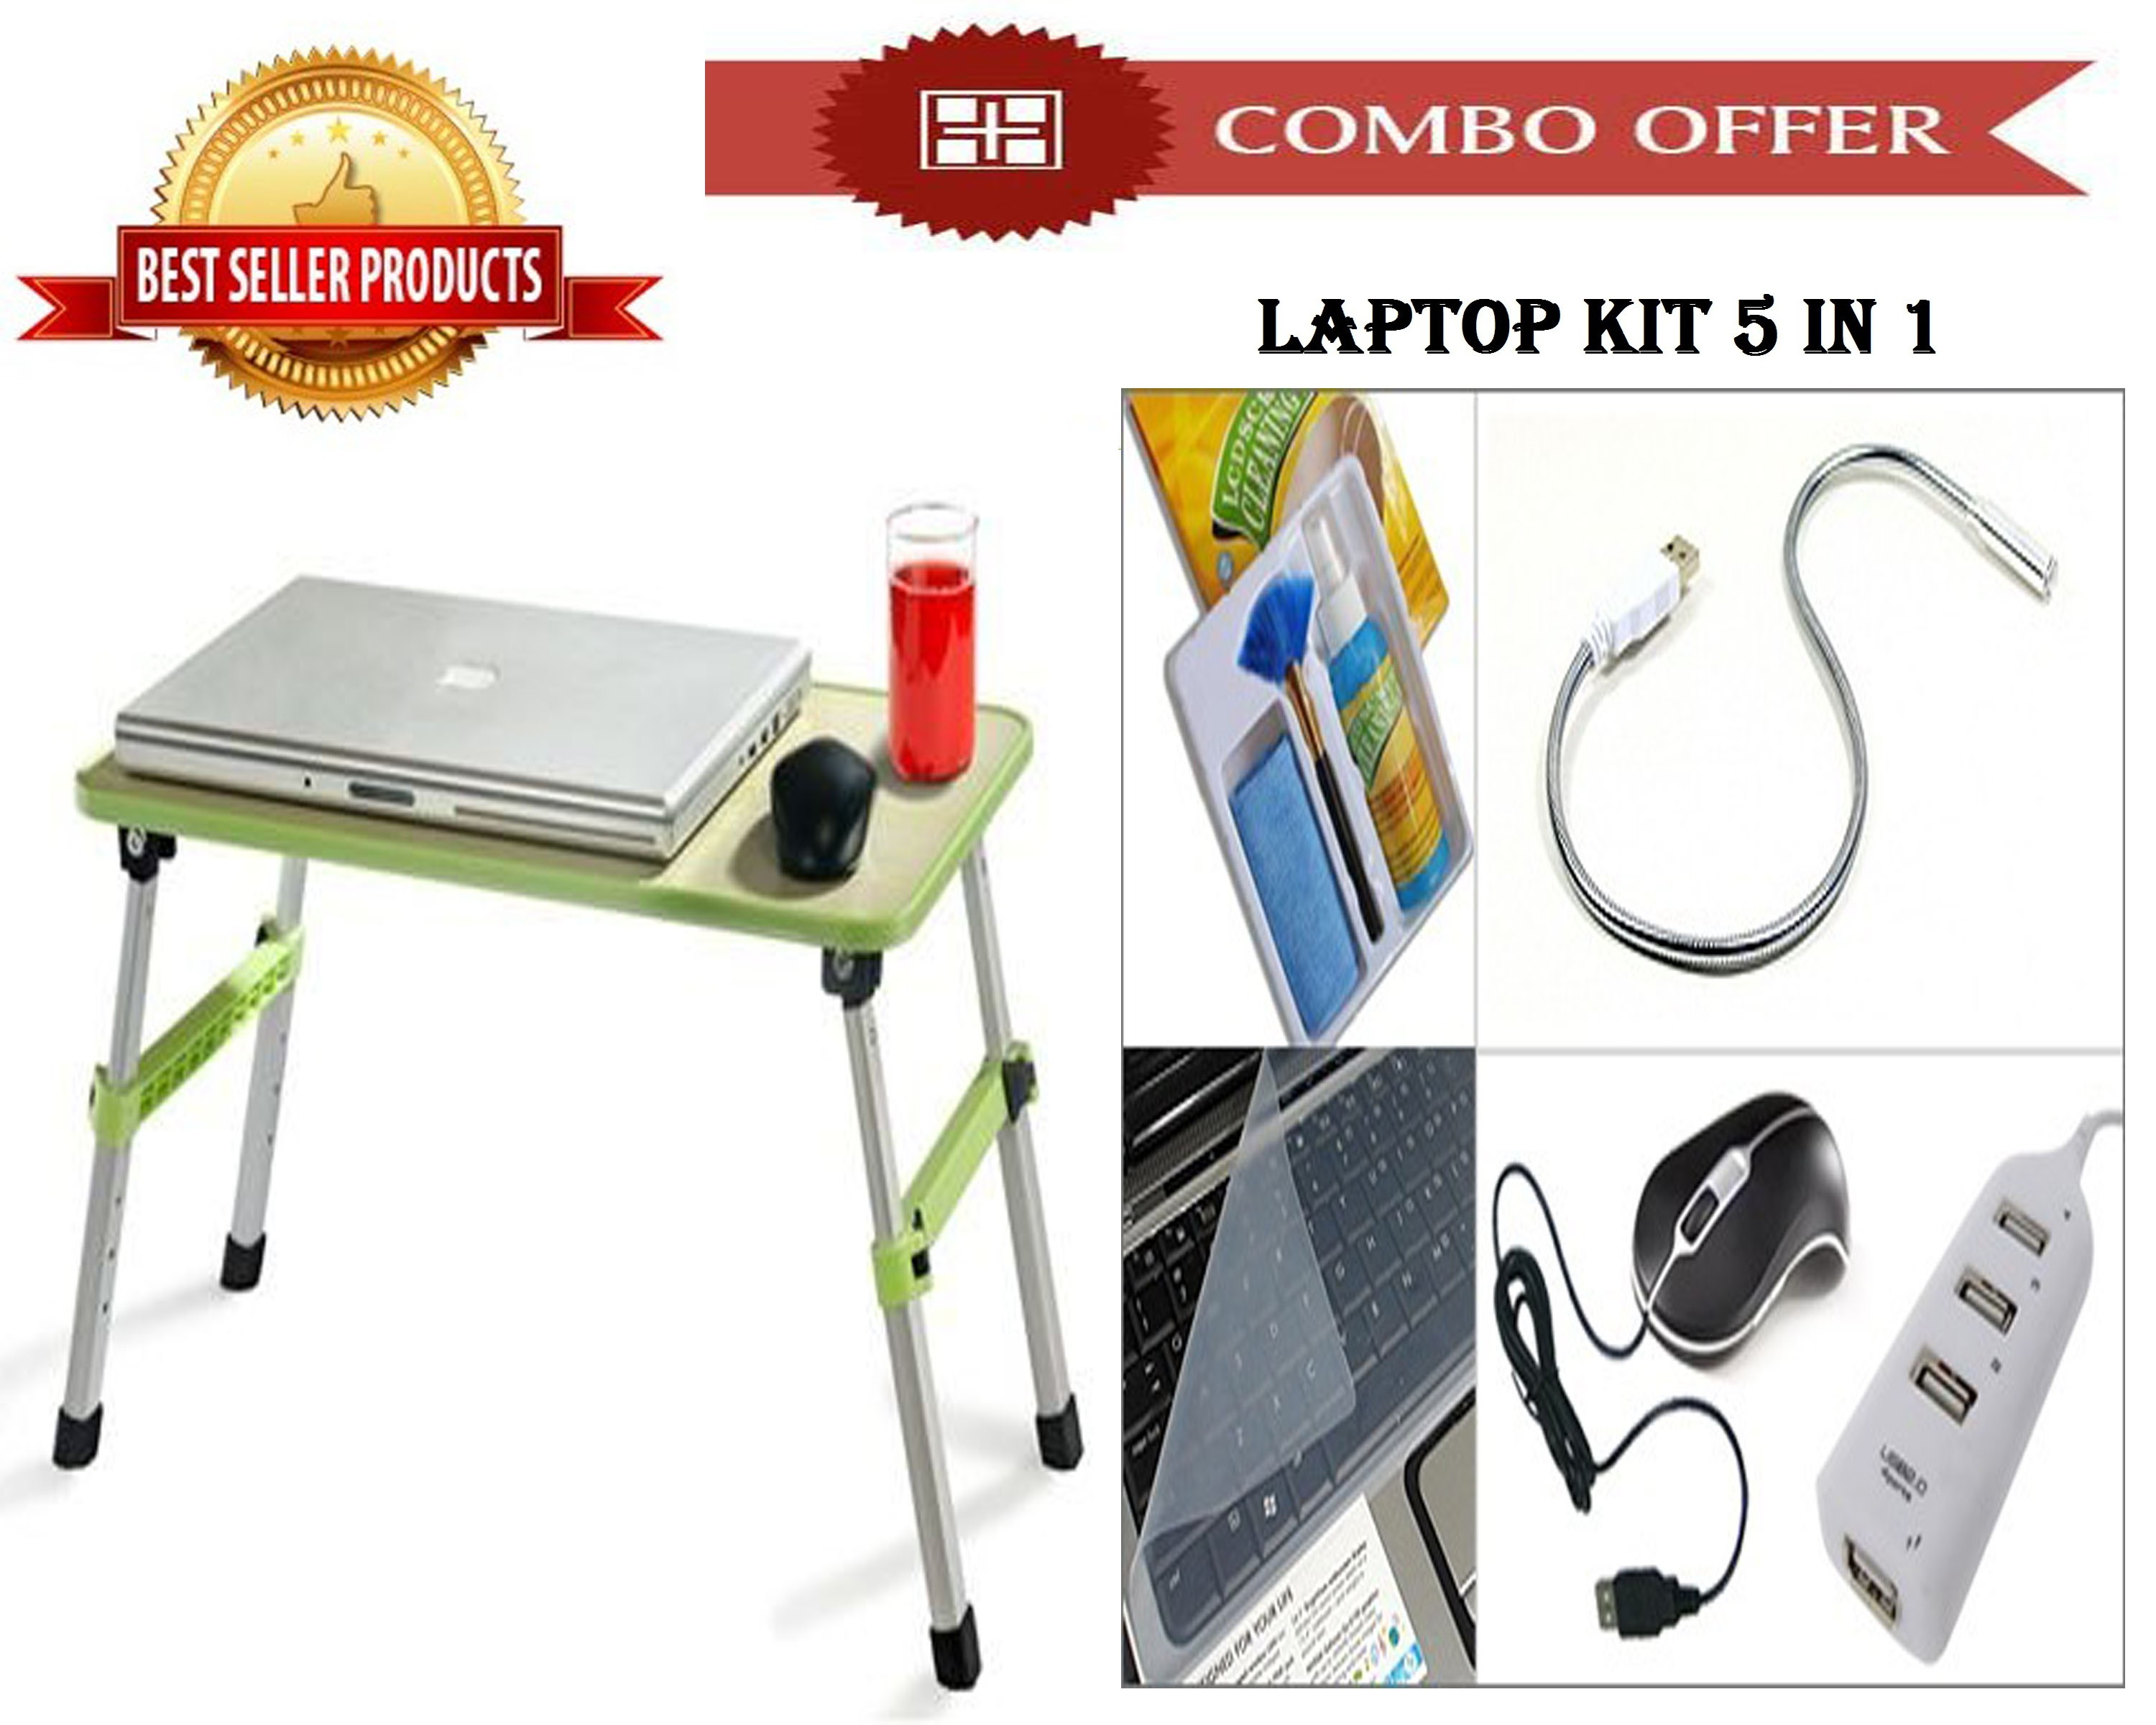 Special Combo Offer! High Quality Study Table + Laptop Kit 5 In 1 - CMHQKIT